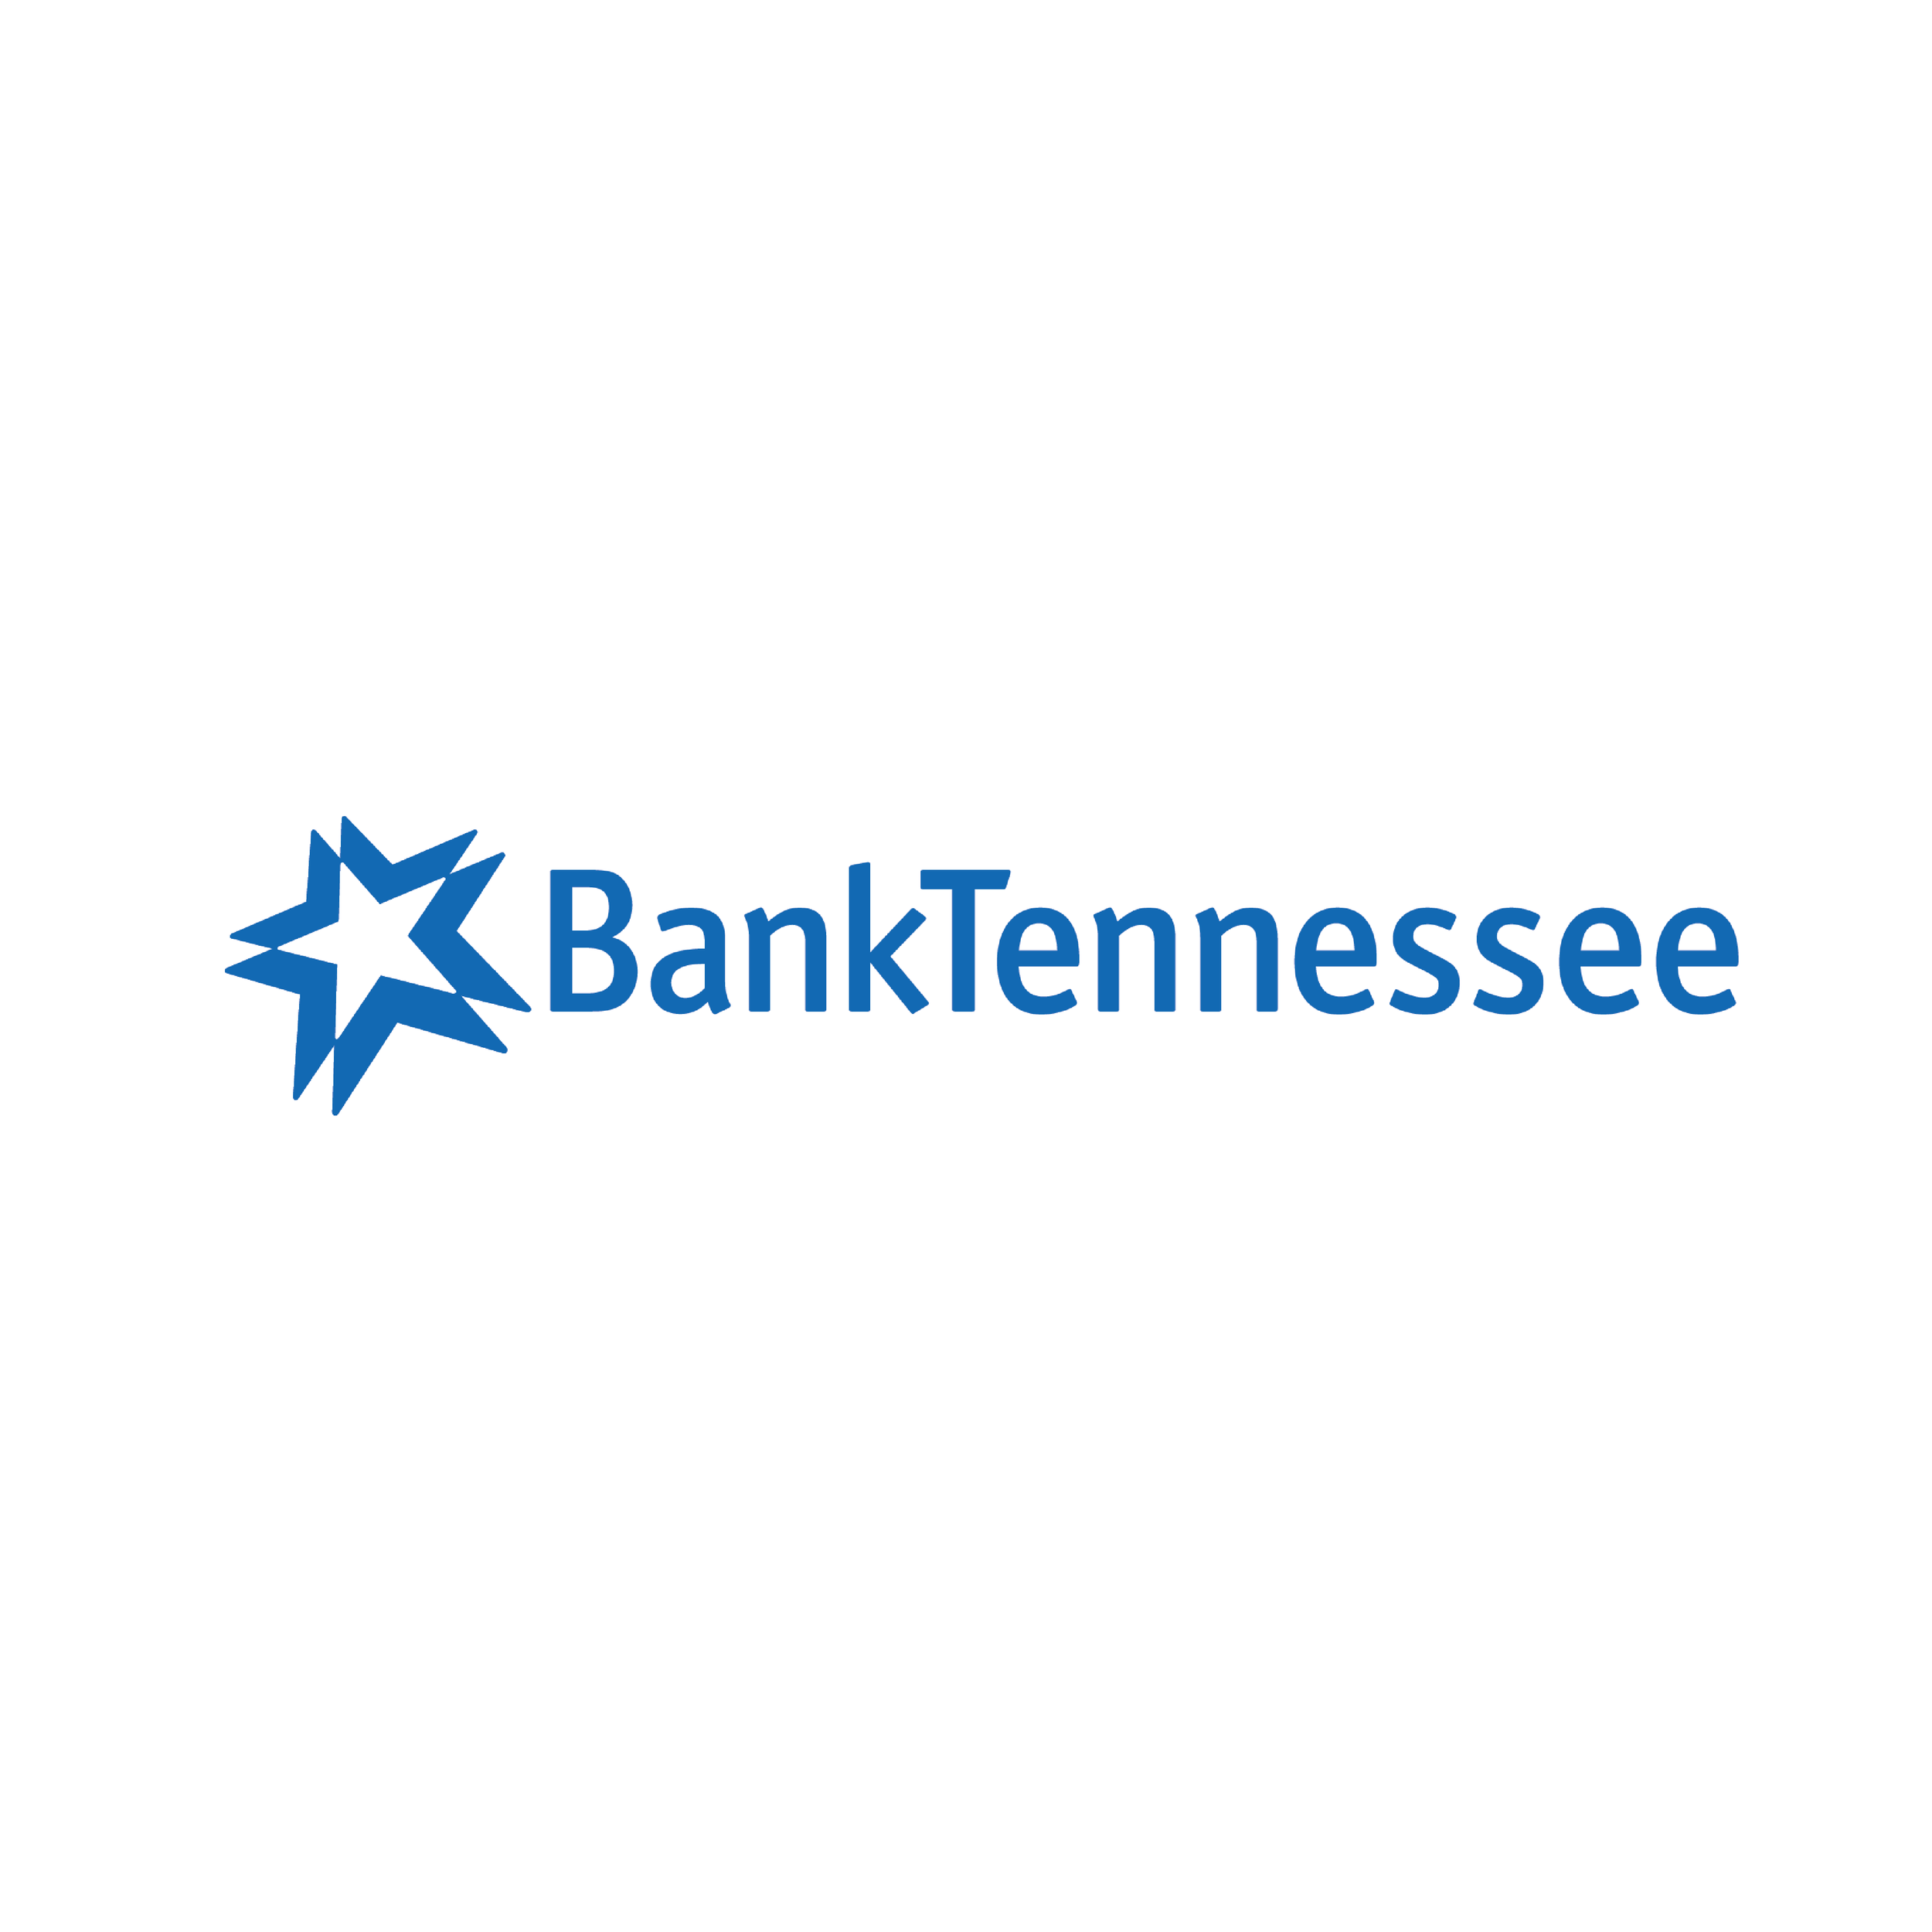 Bank Tennessee Logo.png